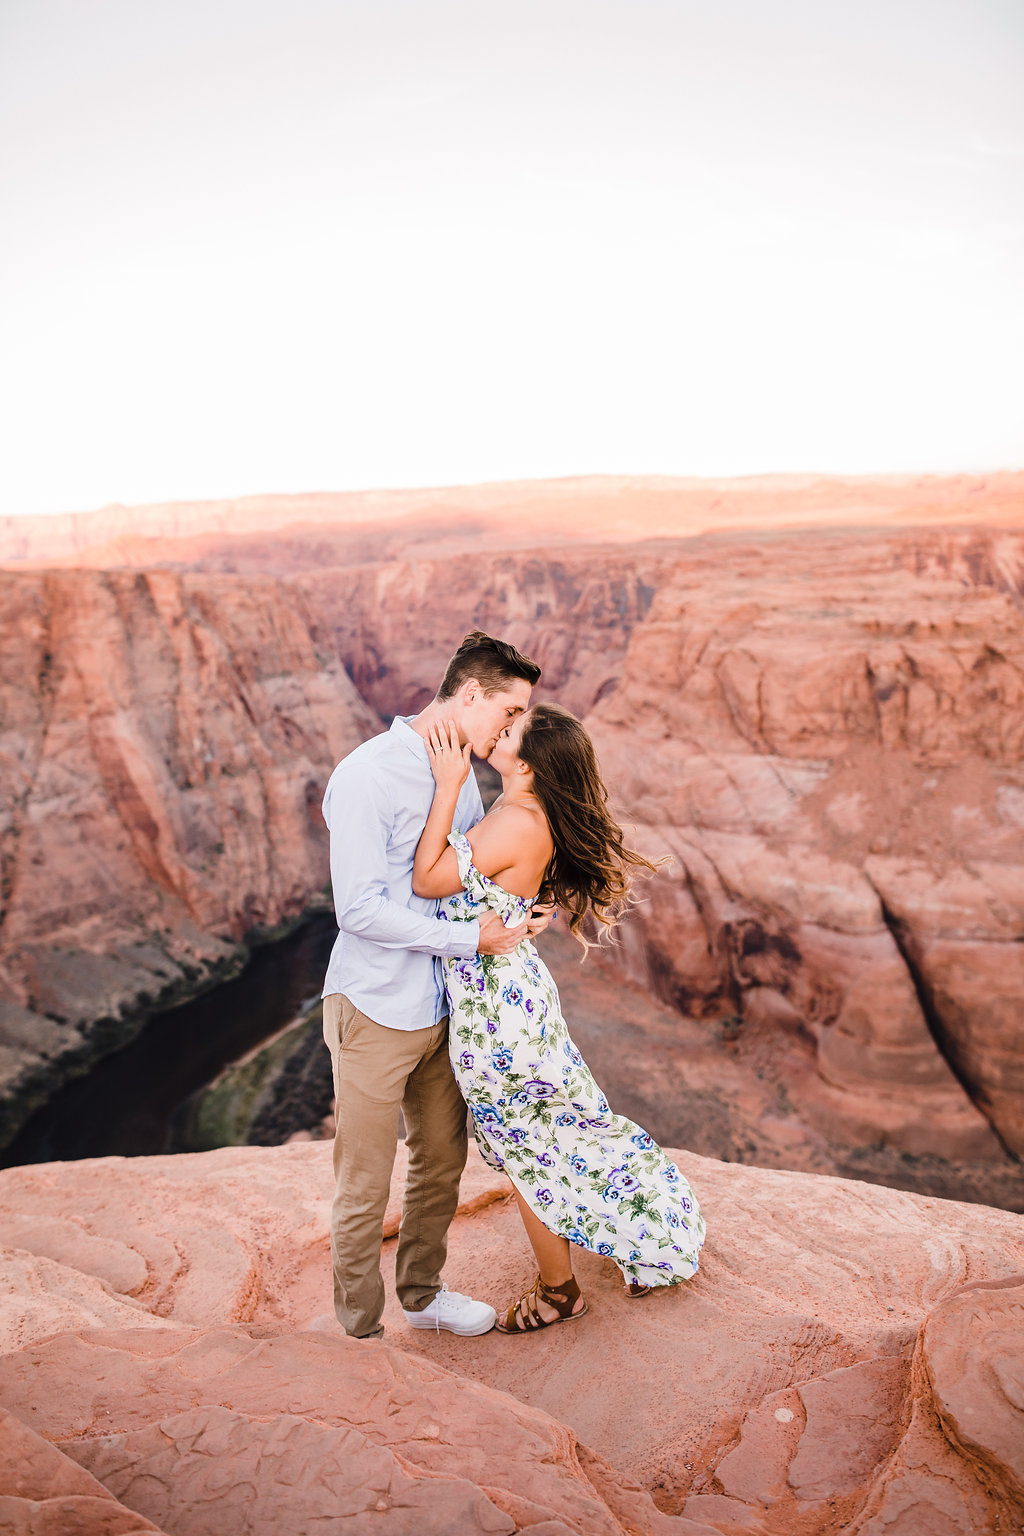 best couples photographer grand canyon page arizona horseshoe bend red rocks cliffs flowing floral dress kissing romantic